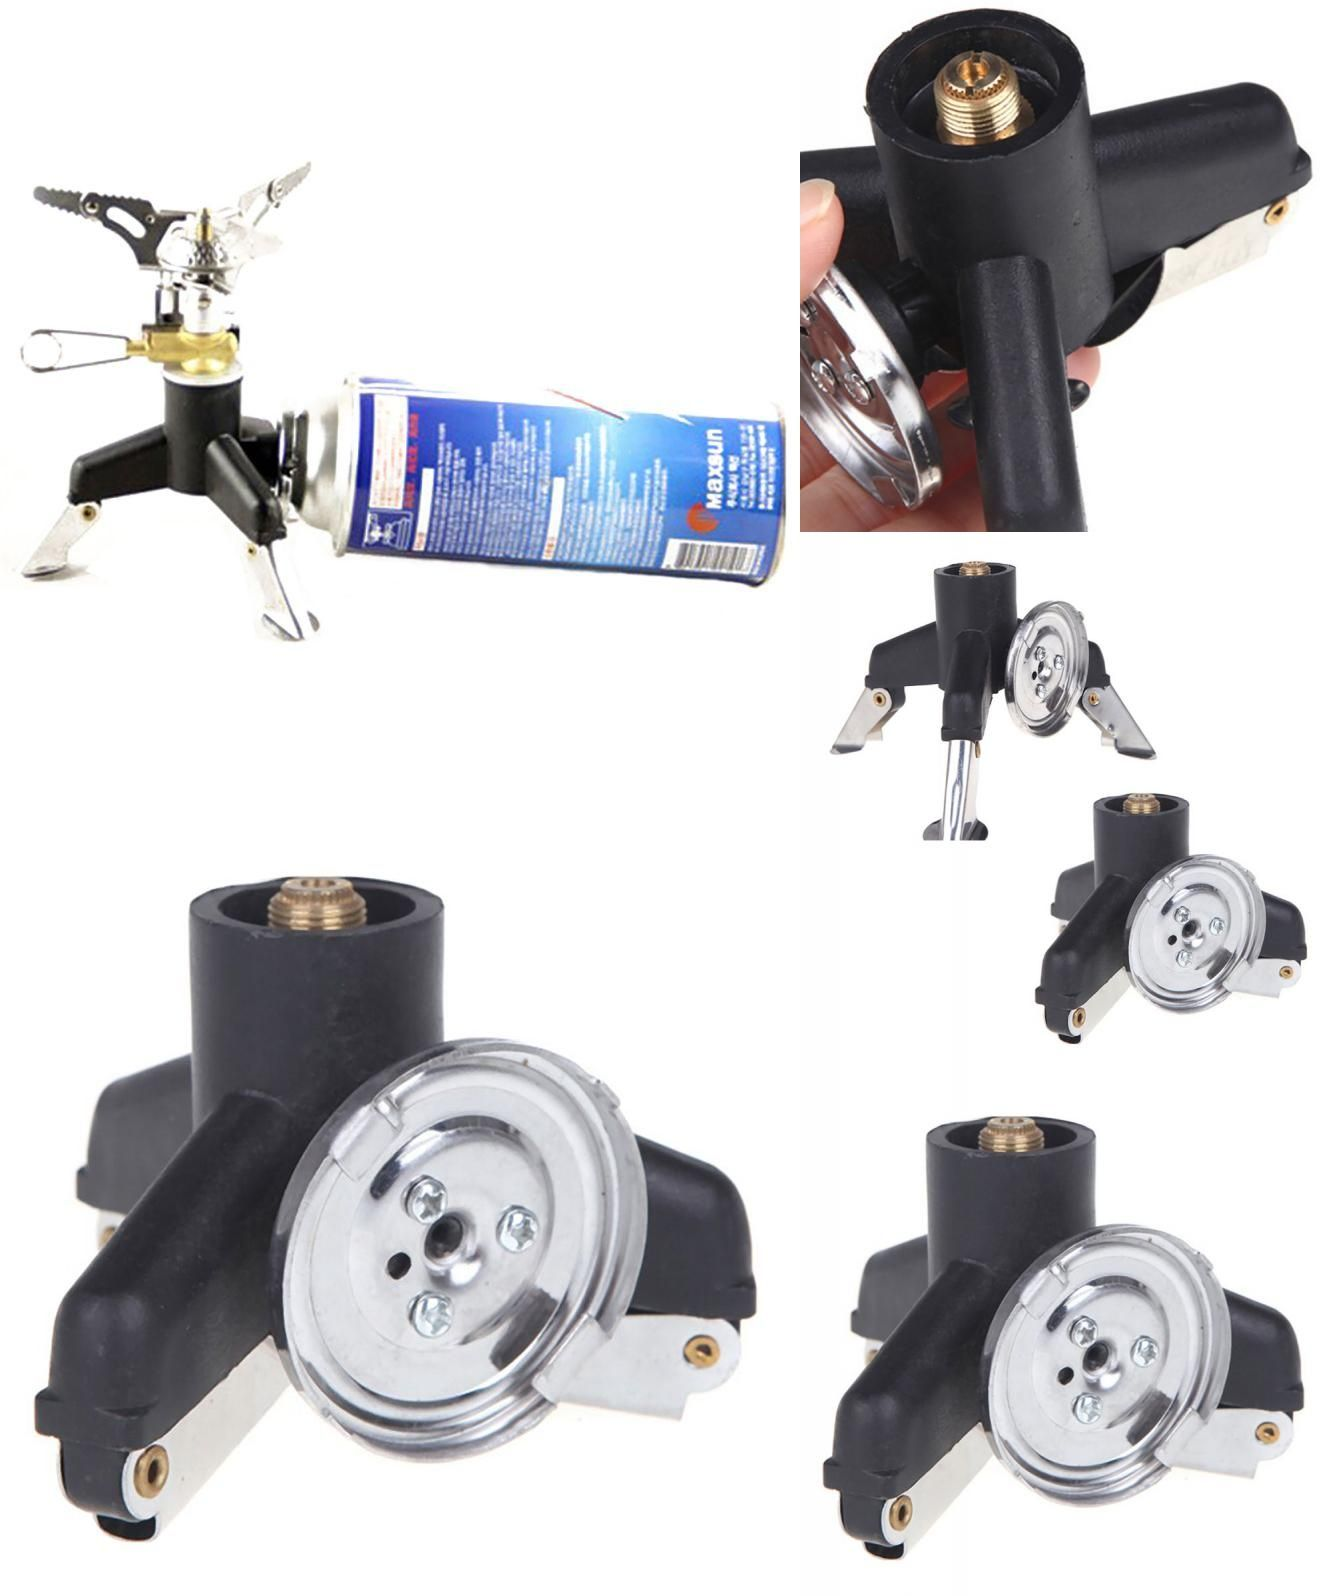 Outdoor Stoves Shop For Cheap Aluminum Alloy Portable Outdoor Camping Gas Stove Adapter Three-leg Transfer Head Adaptor